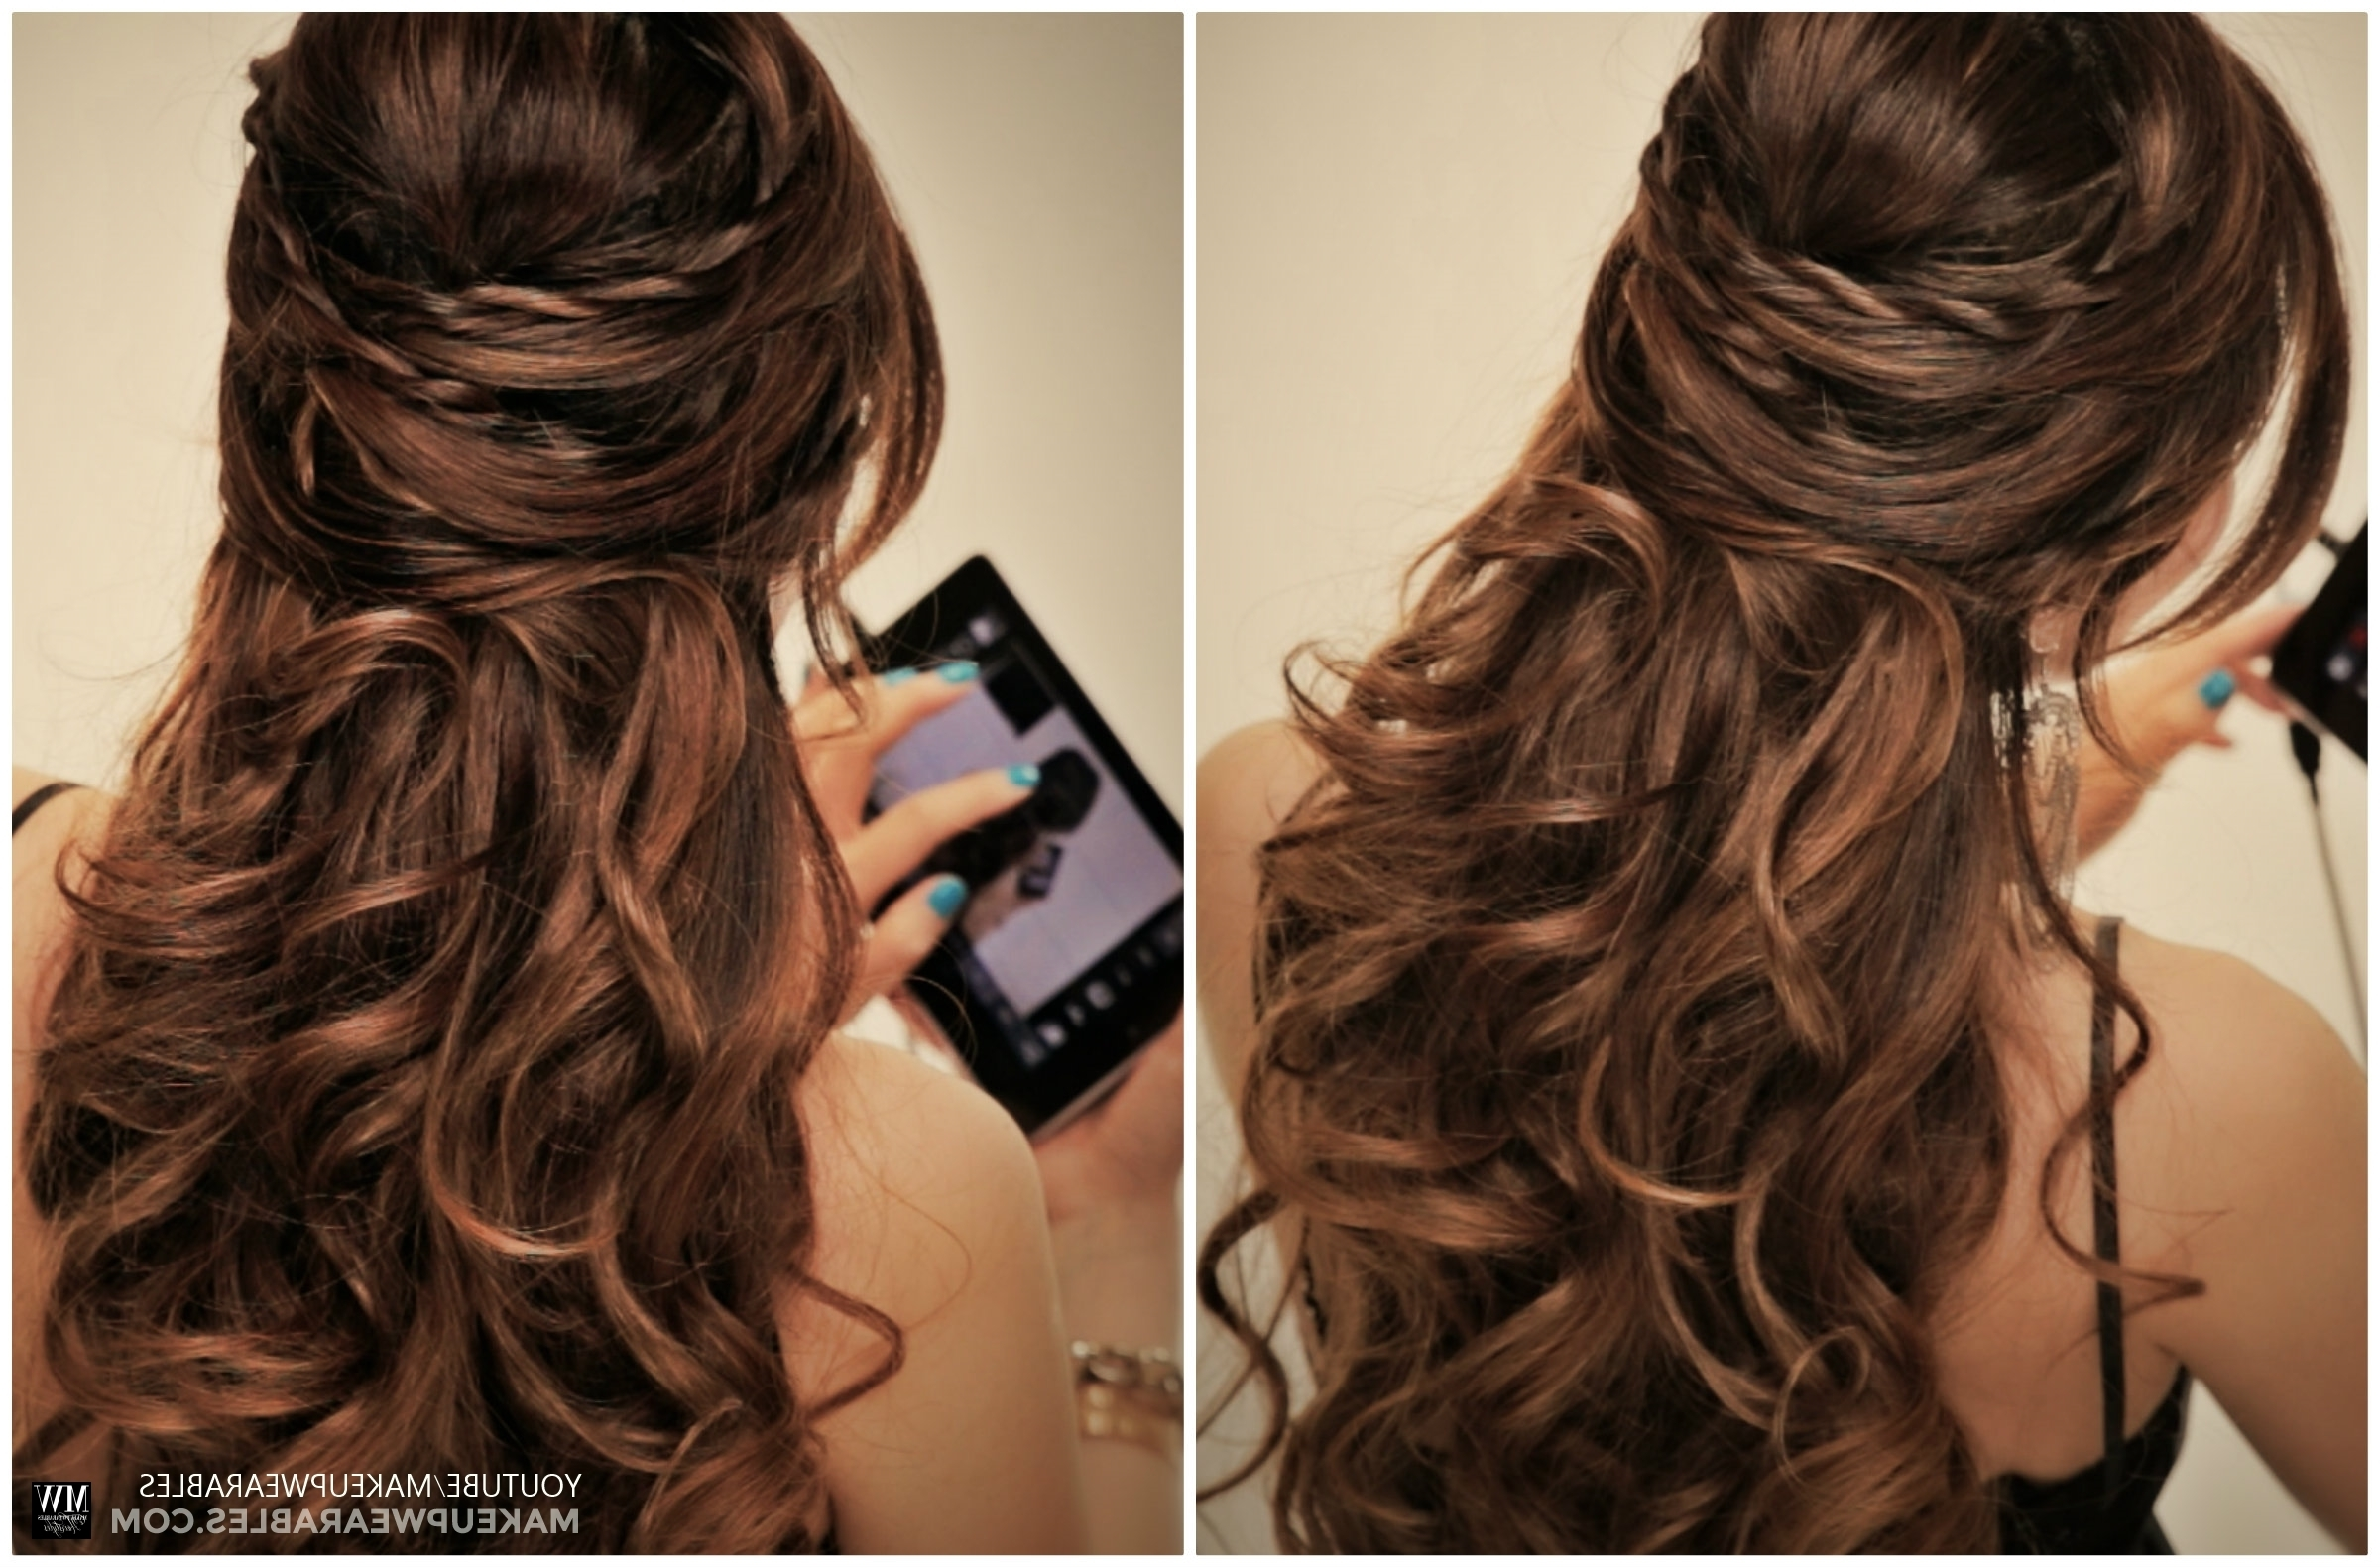 How To: 5 Amazingly Cute + Easy Hairstyles With A Simple Twist Within Popular Romantic Twisted Hairdo Hairstyles (View 5 of 20)